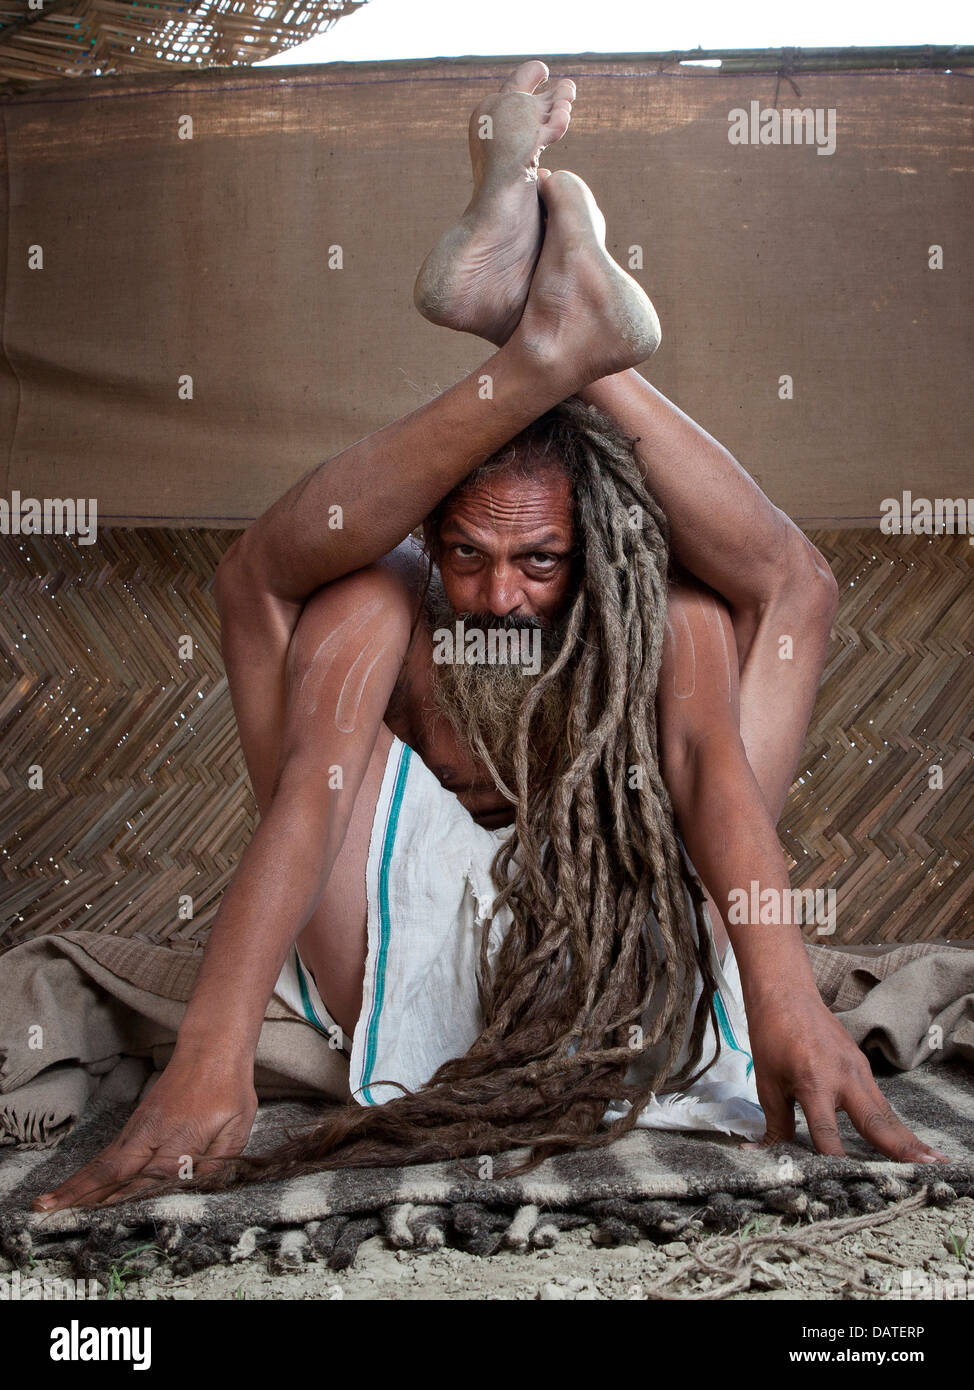 Portrait of a holy man/yogi  at the Kumbh Mela 2013 in Allahabad, India - Stock Image